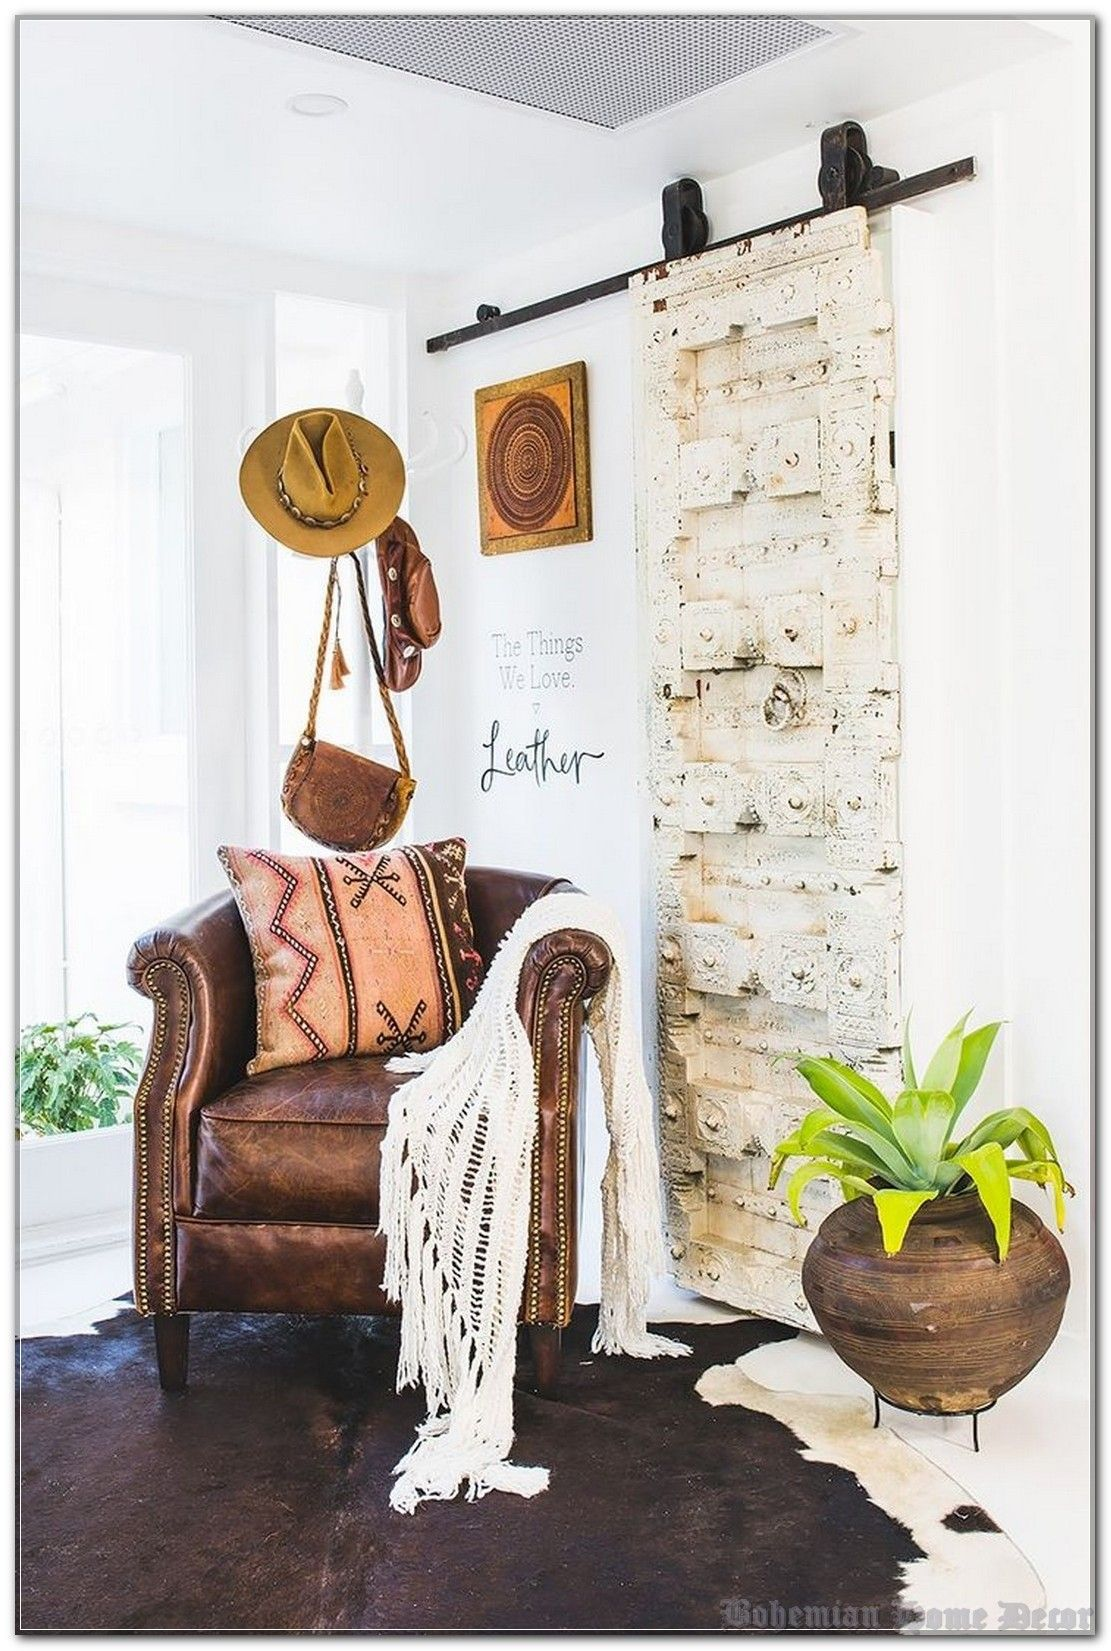 5 Reasons Bohemian Home Decor Is A Waste Of Time